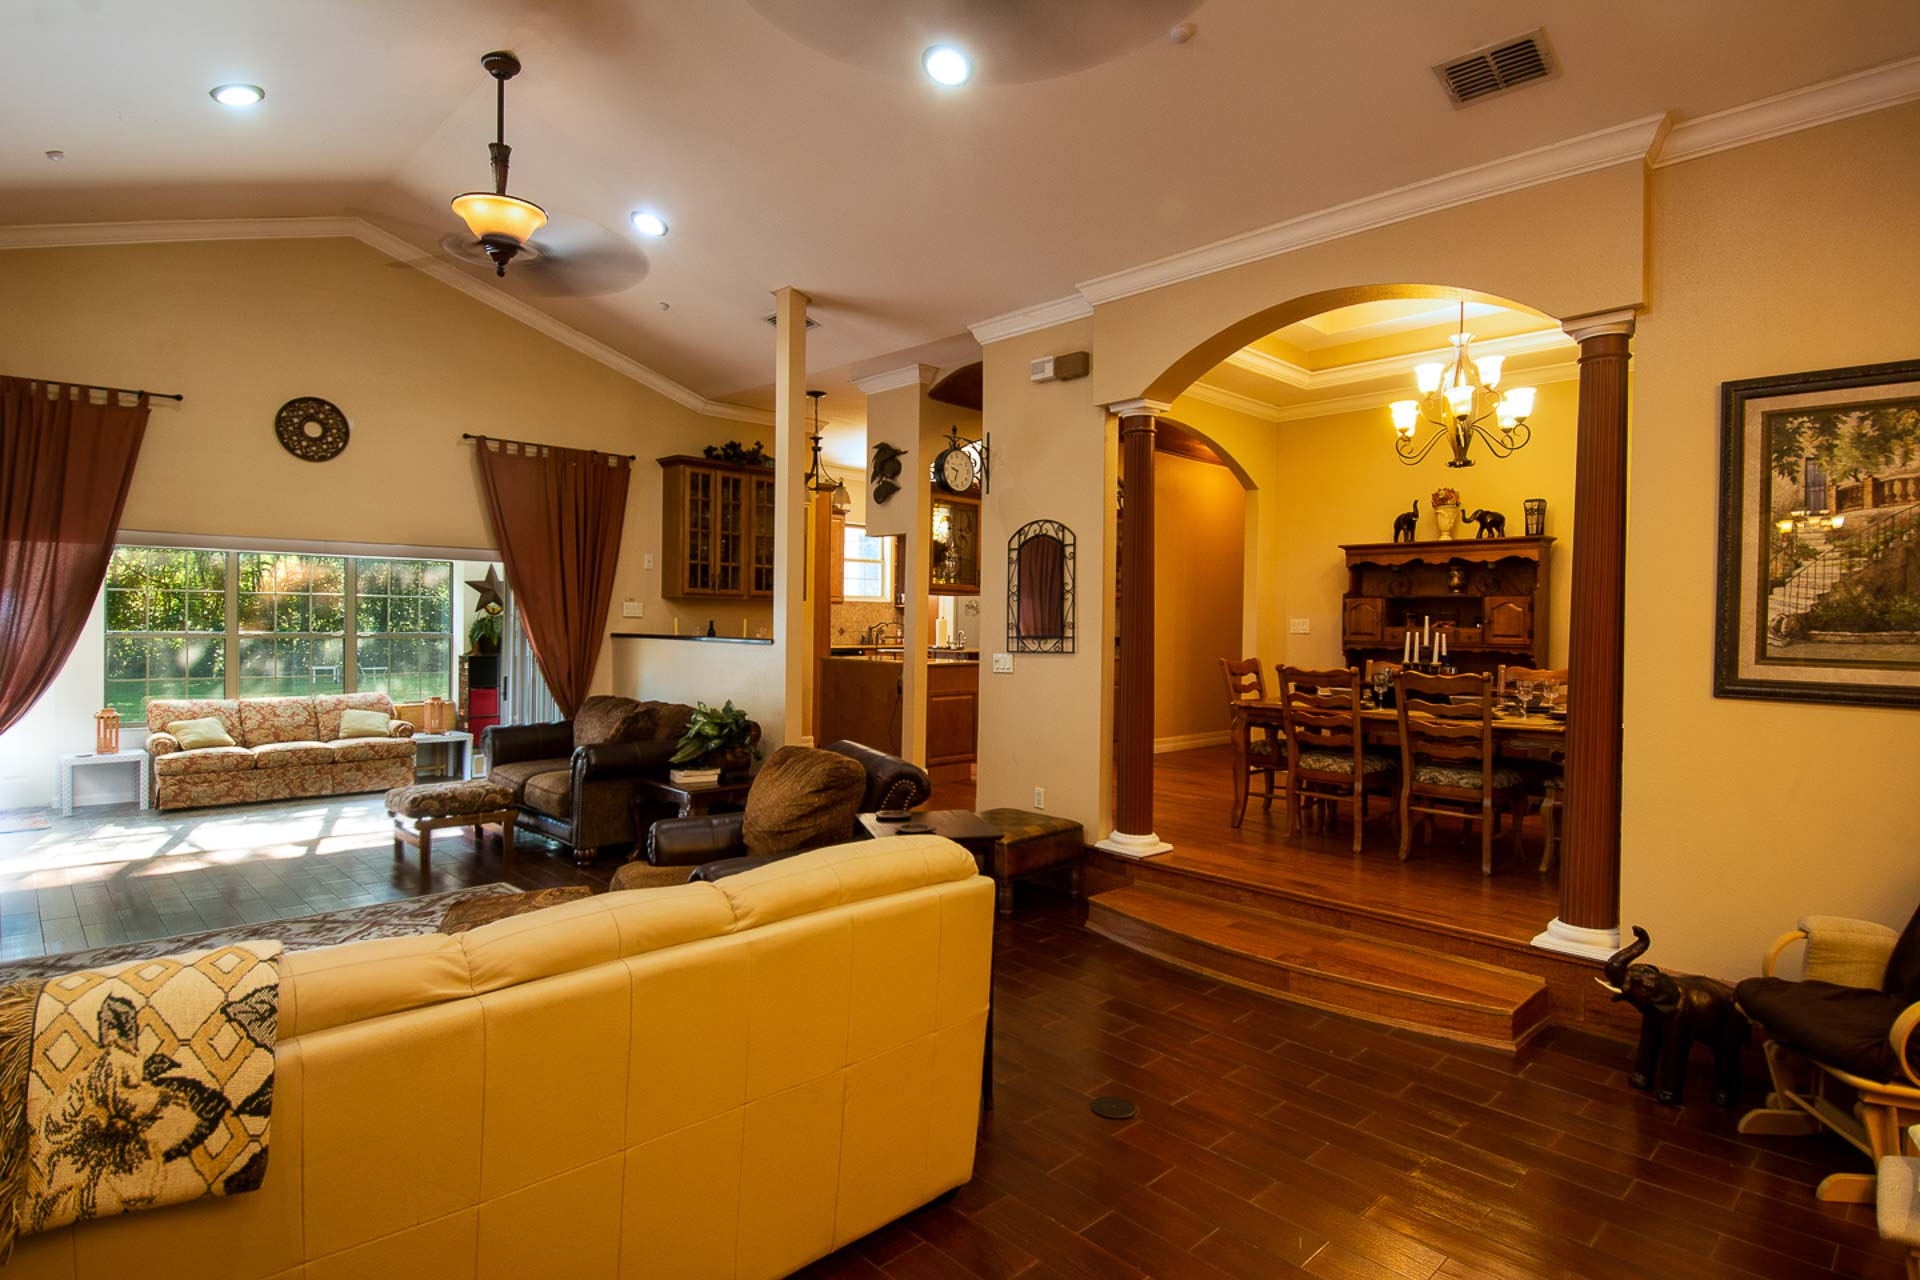 This large living room with vaulted ceiling, recessed lighting, and large columned archway to formal dining room